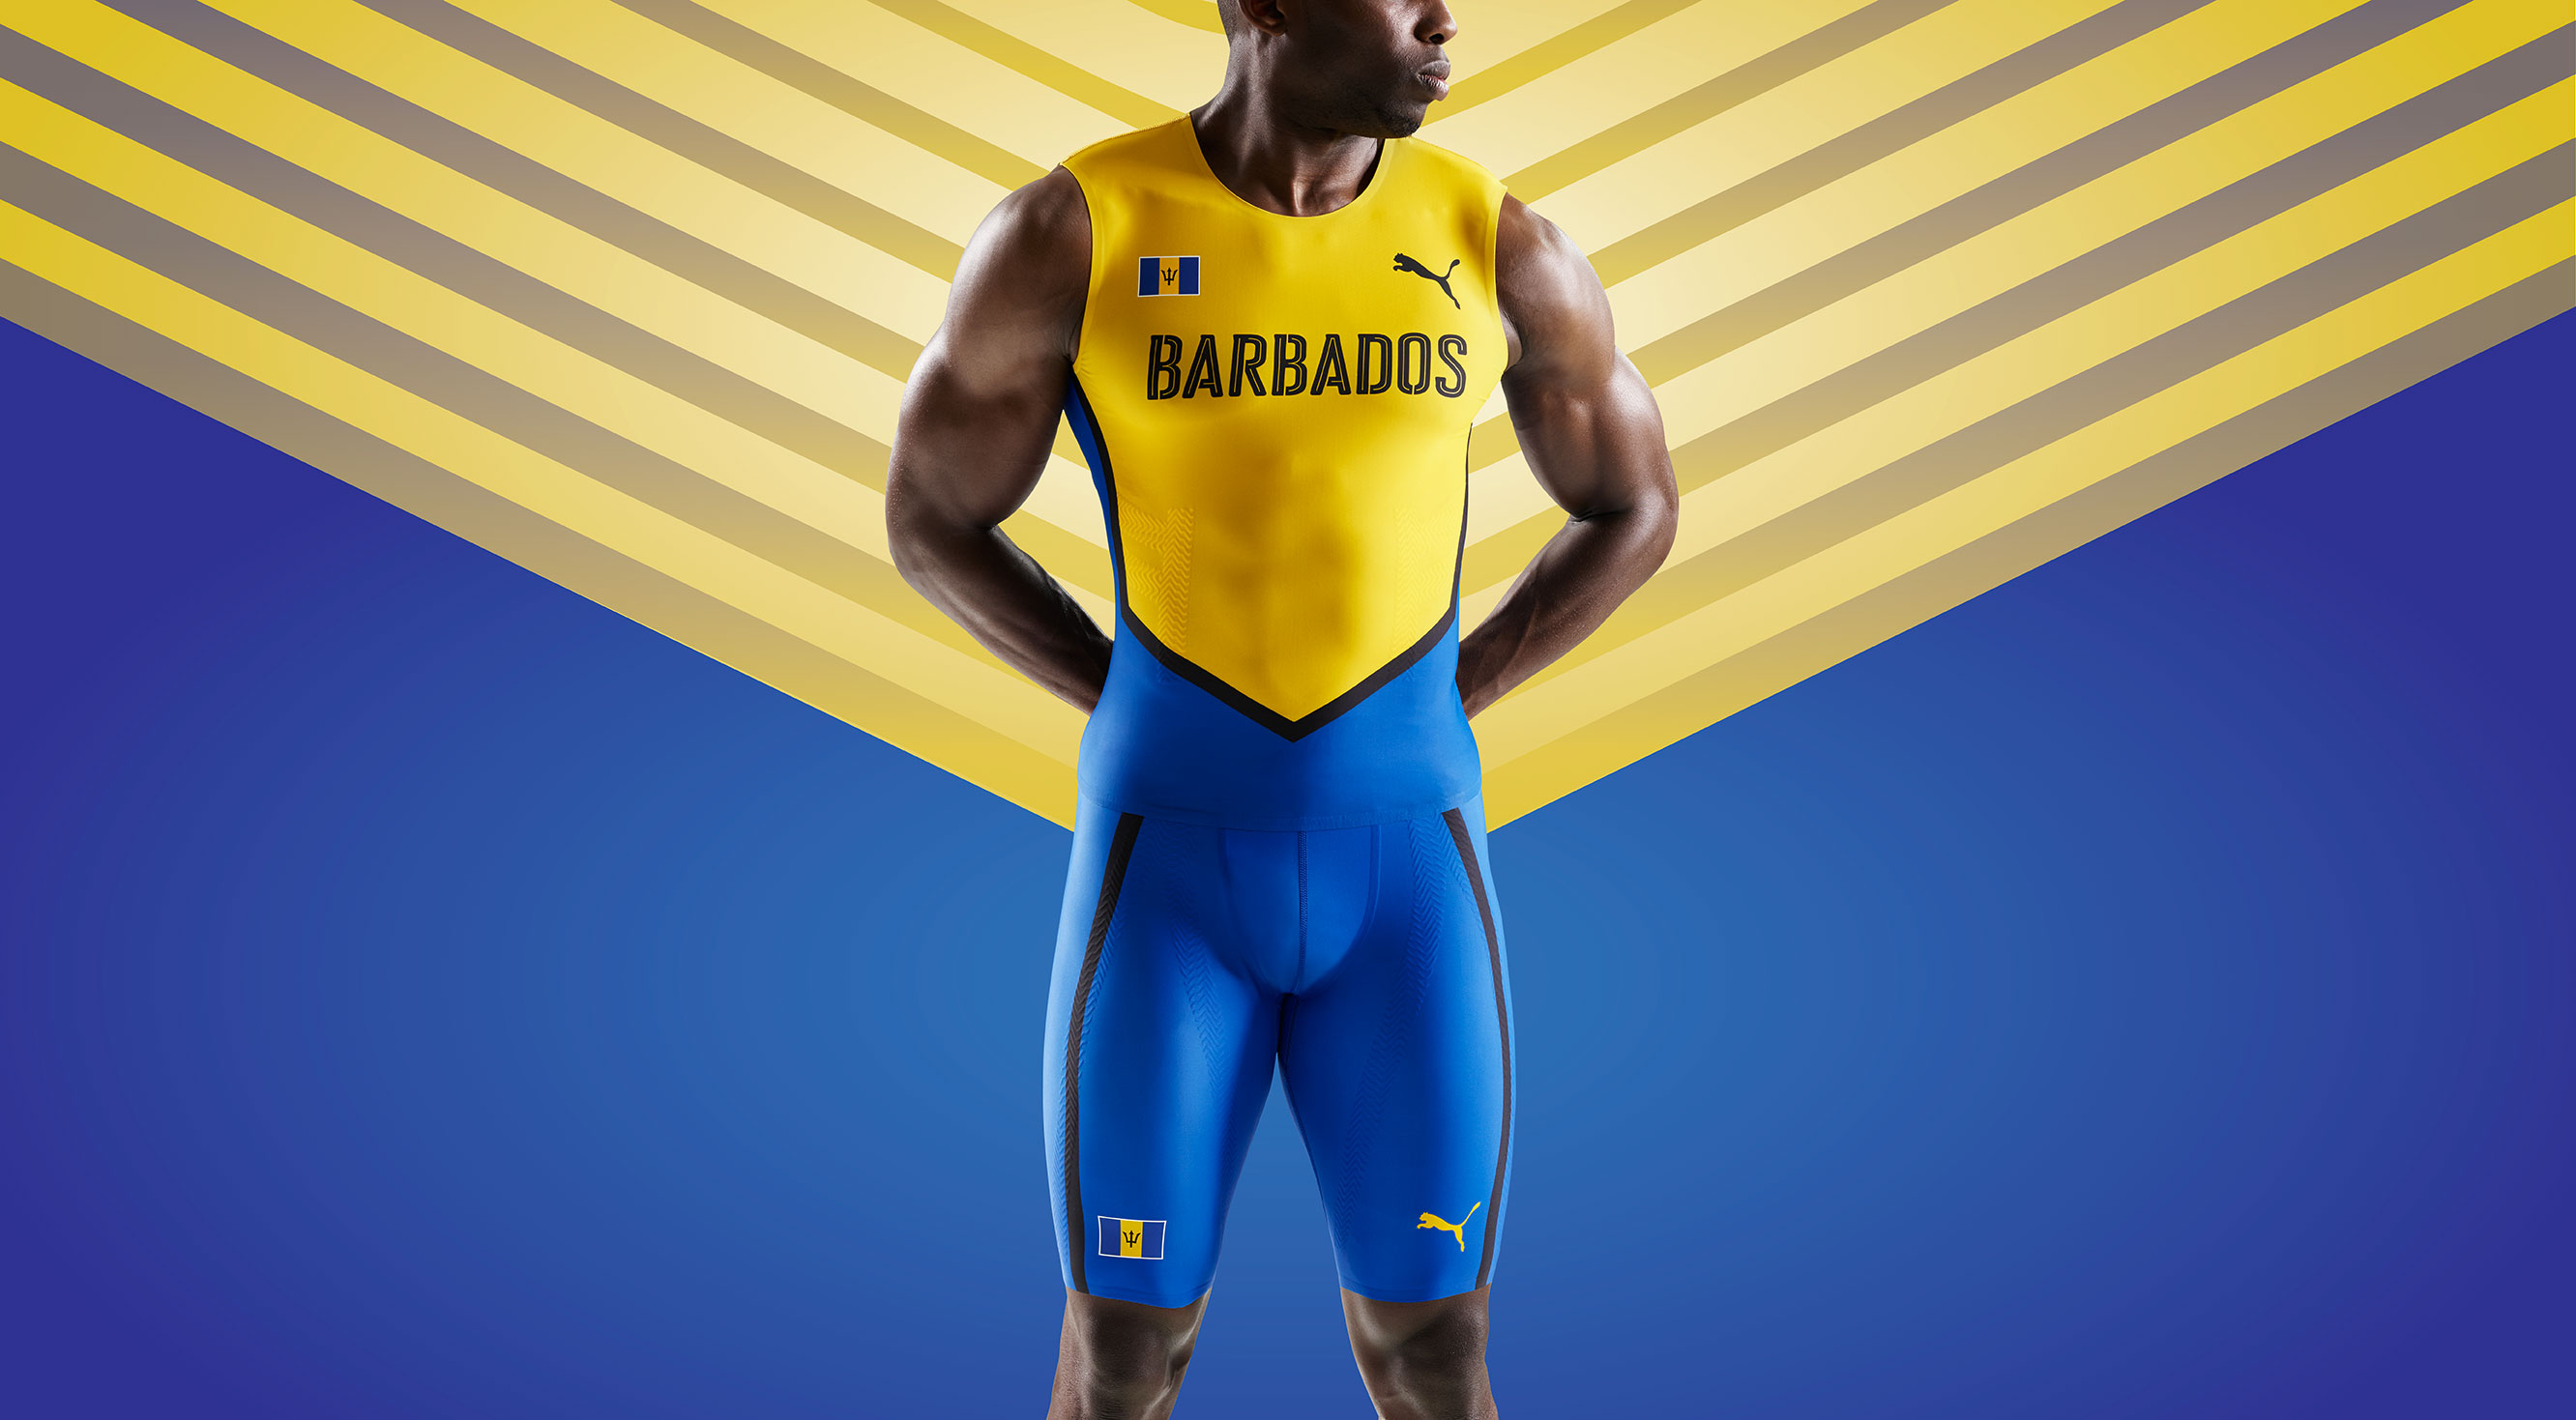 Barbados Amateur Swimming Association The